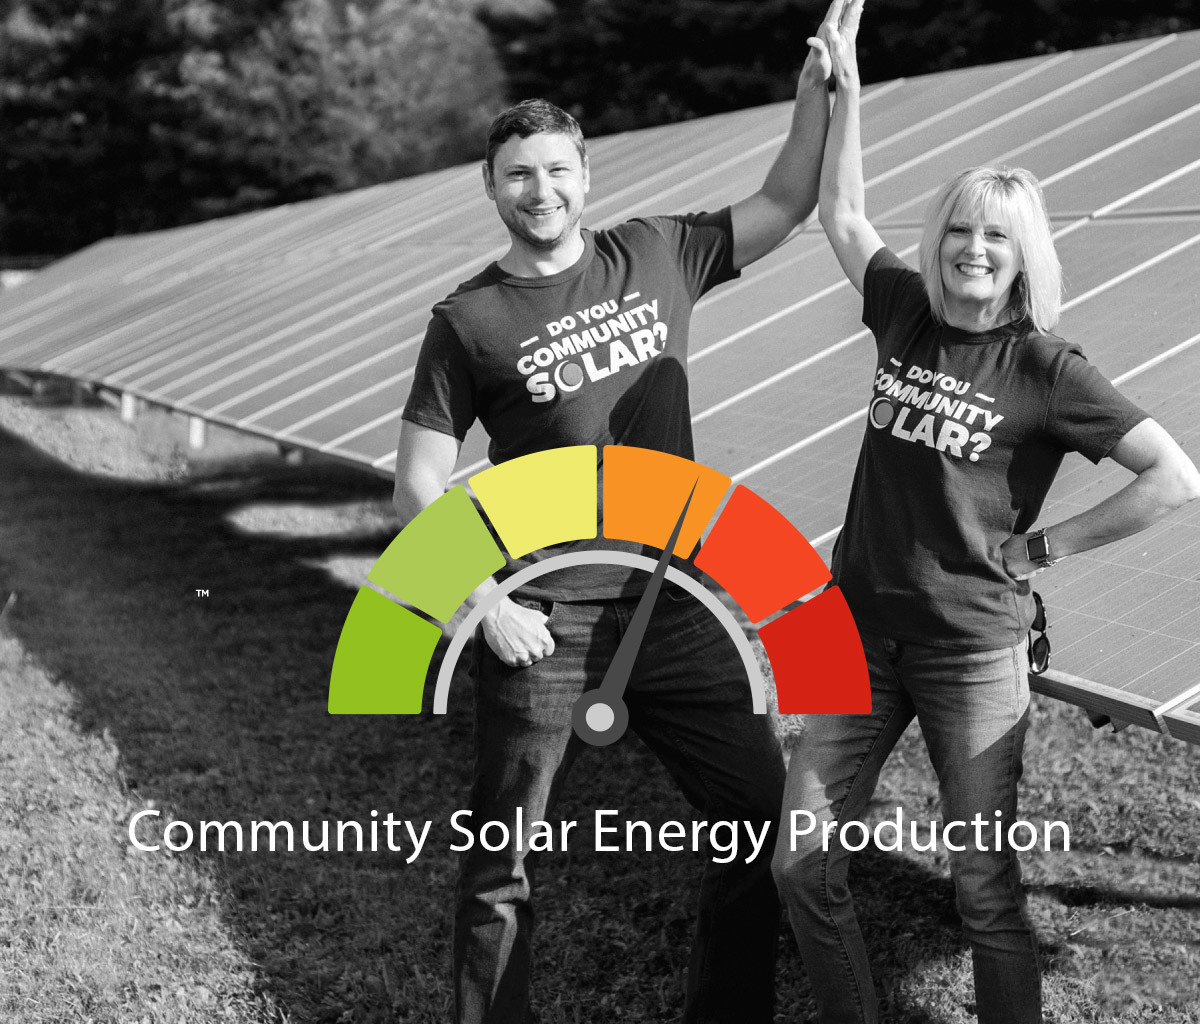 Community Solar Energy Production